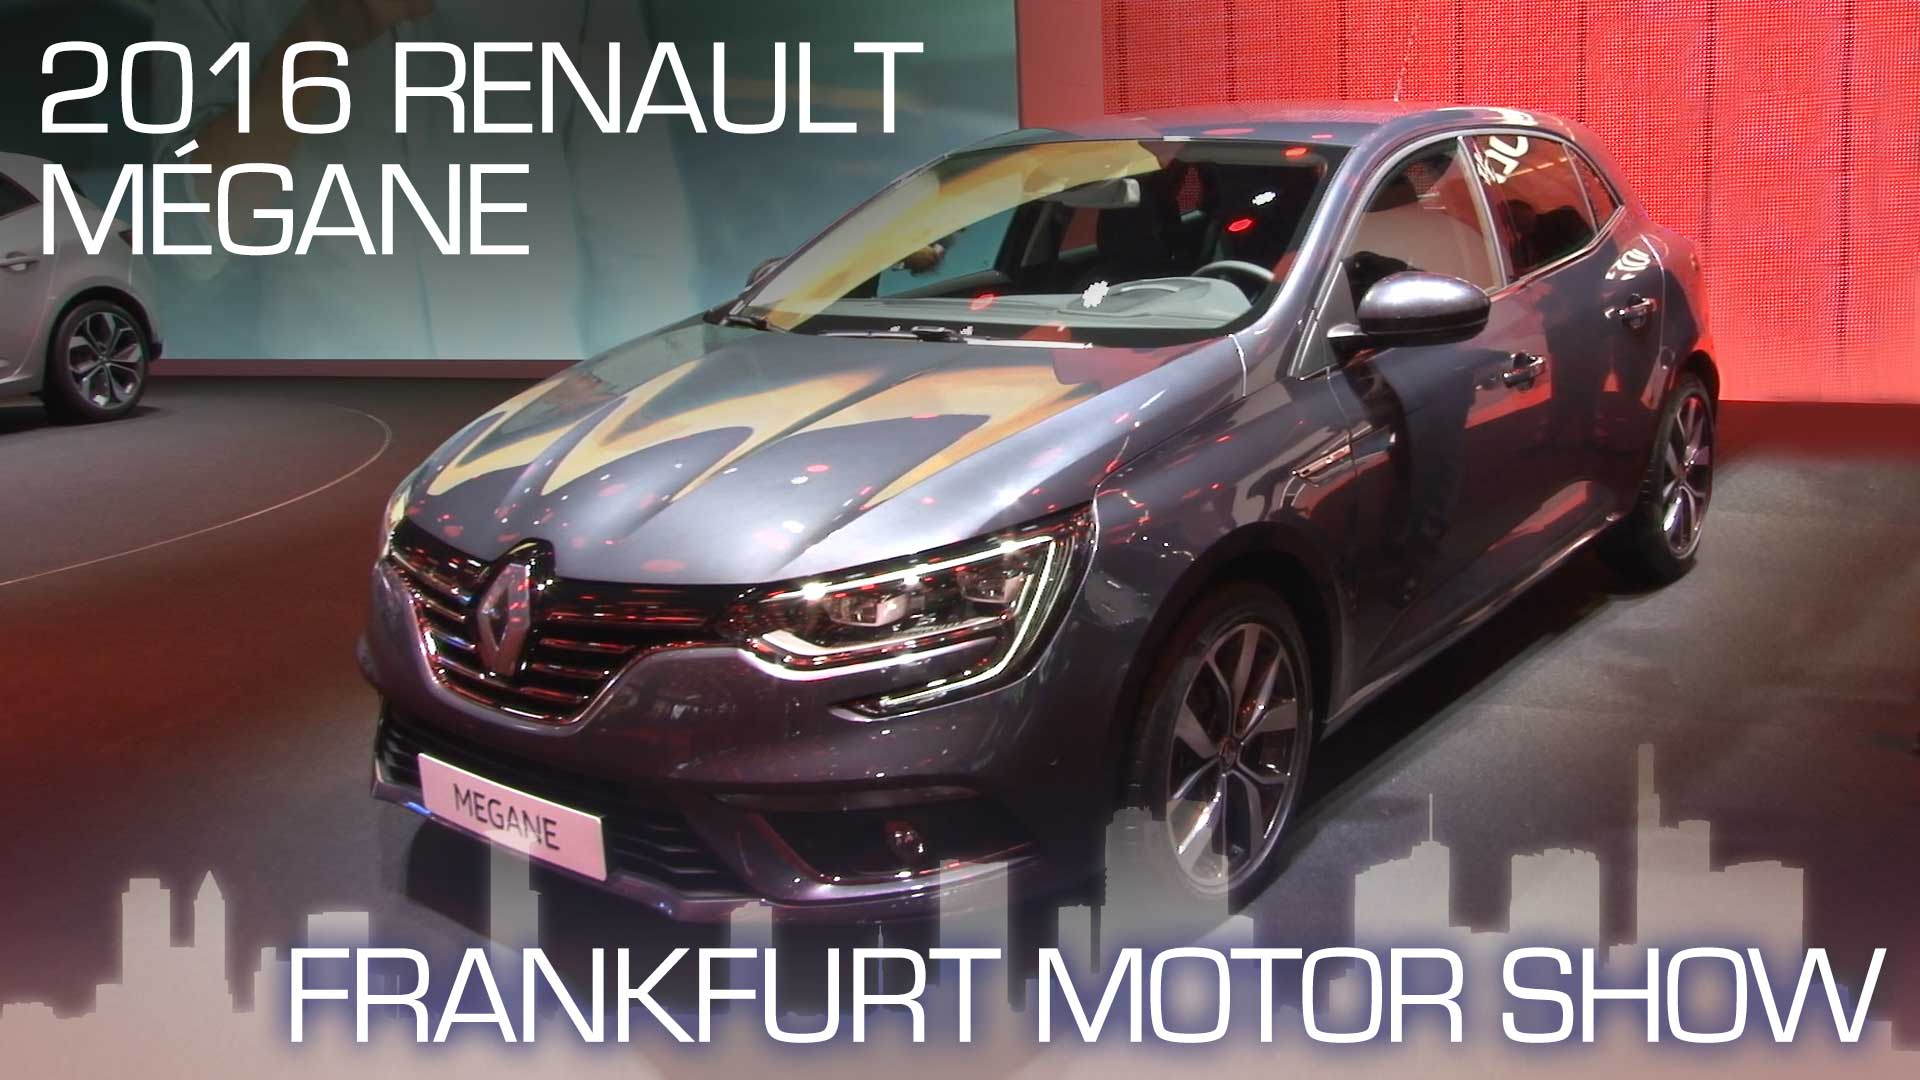 New 2016 Renault Mgane Democratizes Technology And Style